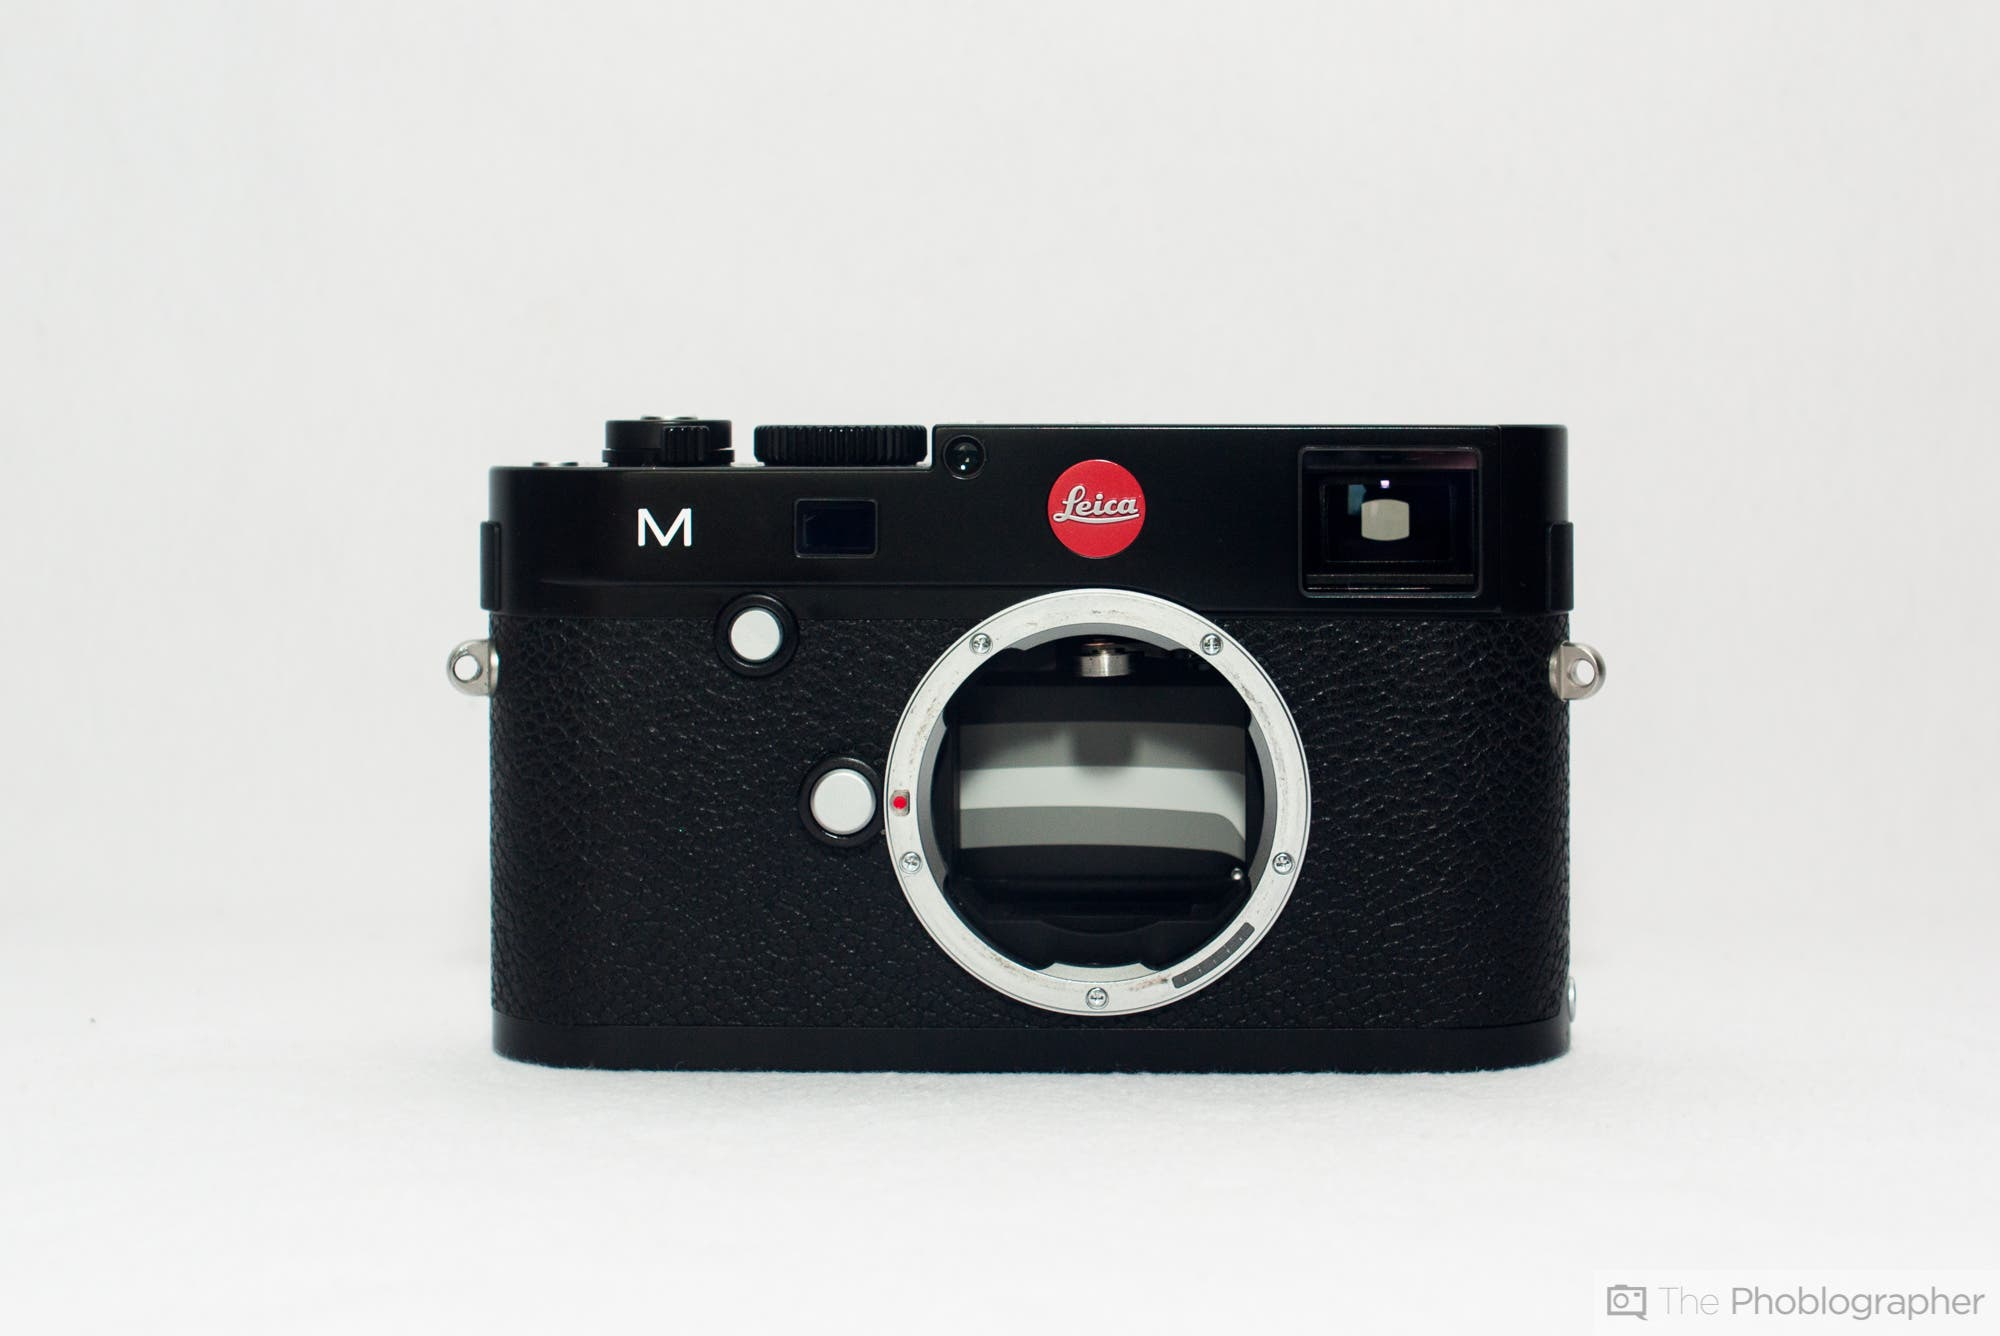 Reports State That Leica Is Working On A New Camera System The Of Digital Cameras Felix Esser Phoblographer M Typ 240 Review Front View